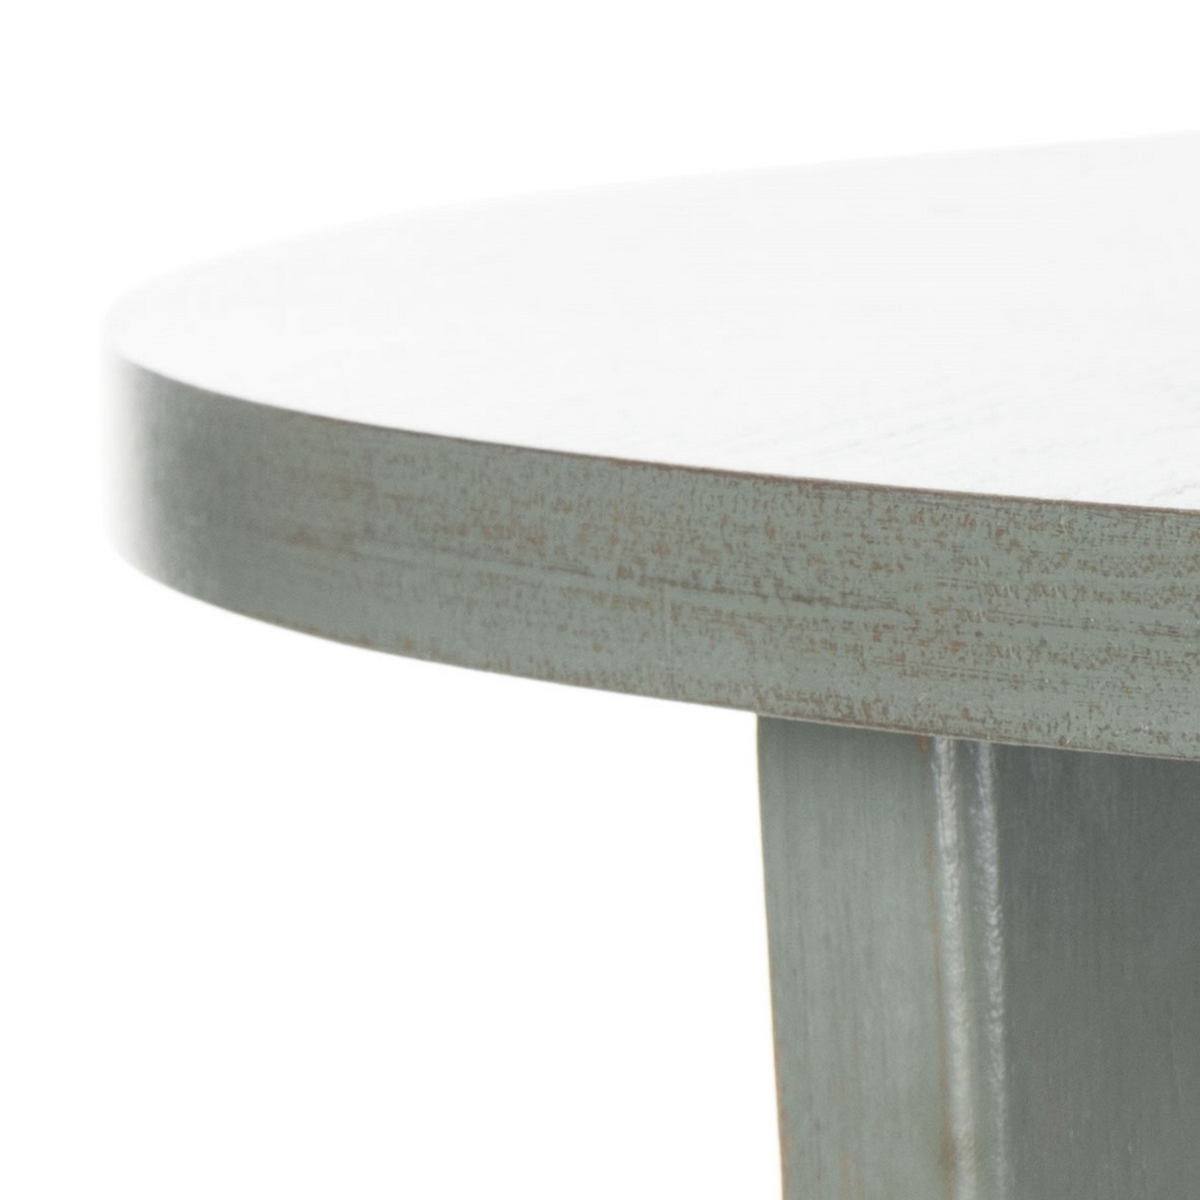 accent tables furniture safavieh detail round pedestal table product details throne for drums battery operated dining lamps west elm knock off modern chairs great pier one coupons